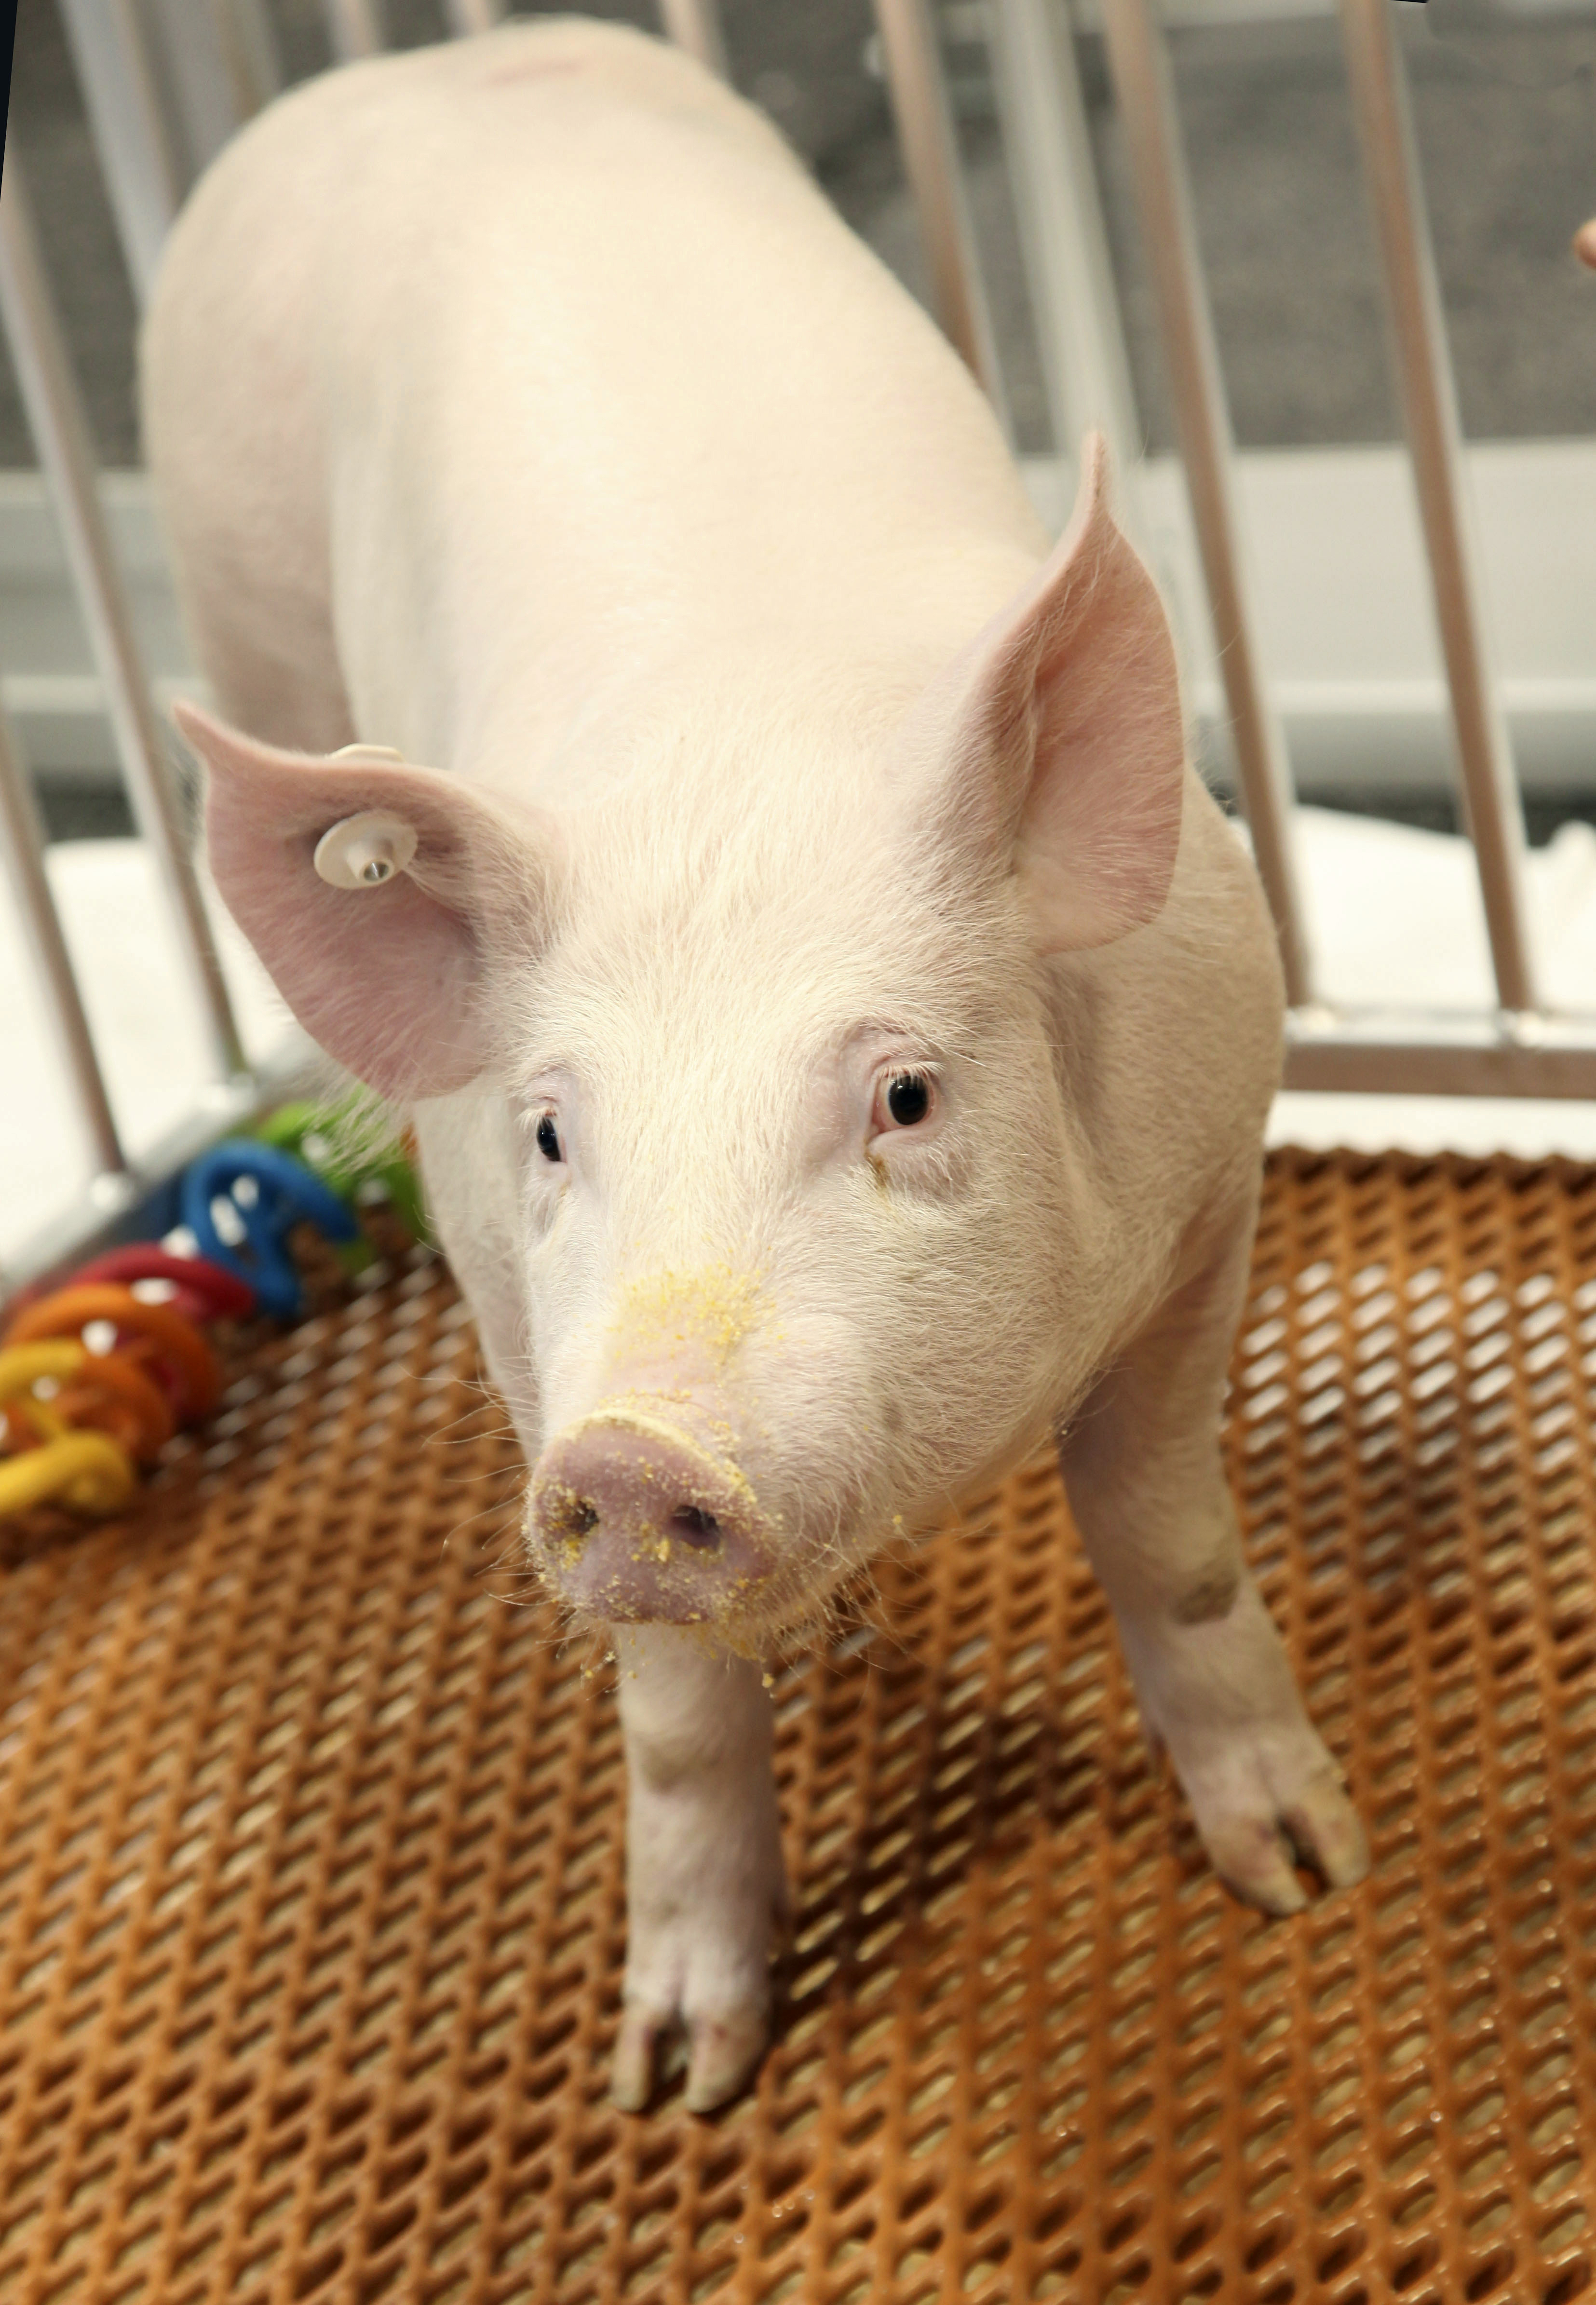 This undated photo provided by Revivicor, Inc., a unit of United Therapeutics, shows a genetically modified pig. U.S. regulators have approved a genetically modified pig for food and medical products, making it the second such animal to get the green light for human consumption -- but United Therapeutics, the company behind it says there are no imminent plans for its meat to be sold. Photo: AP